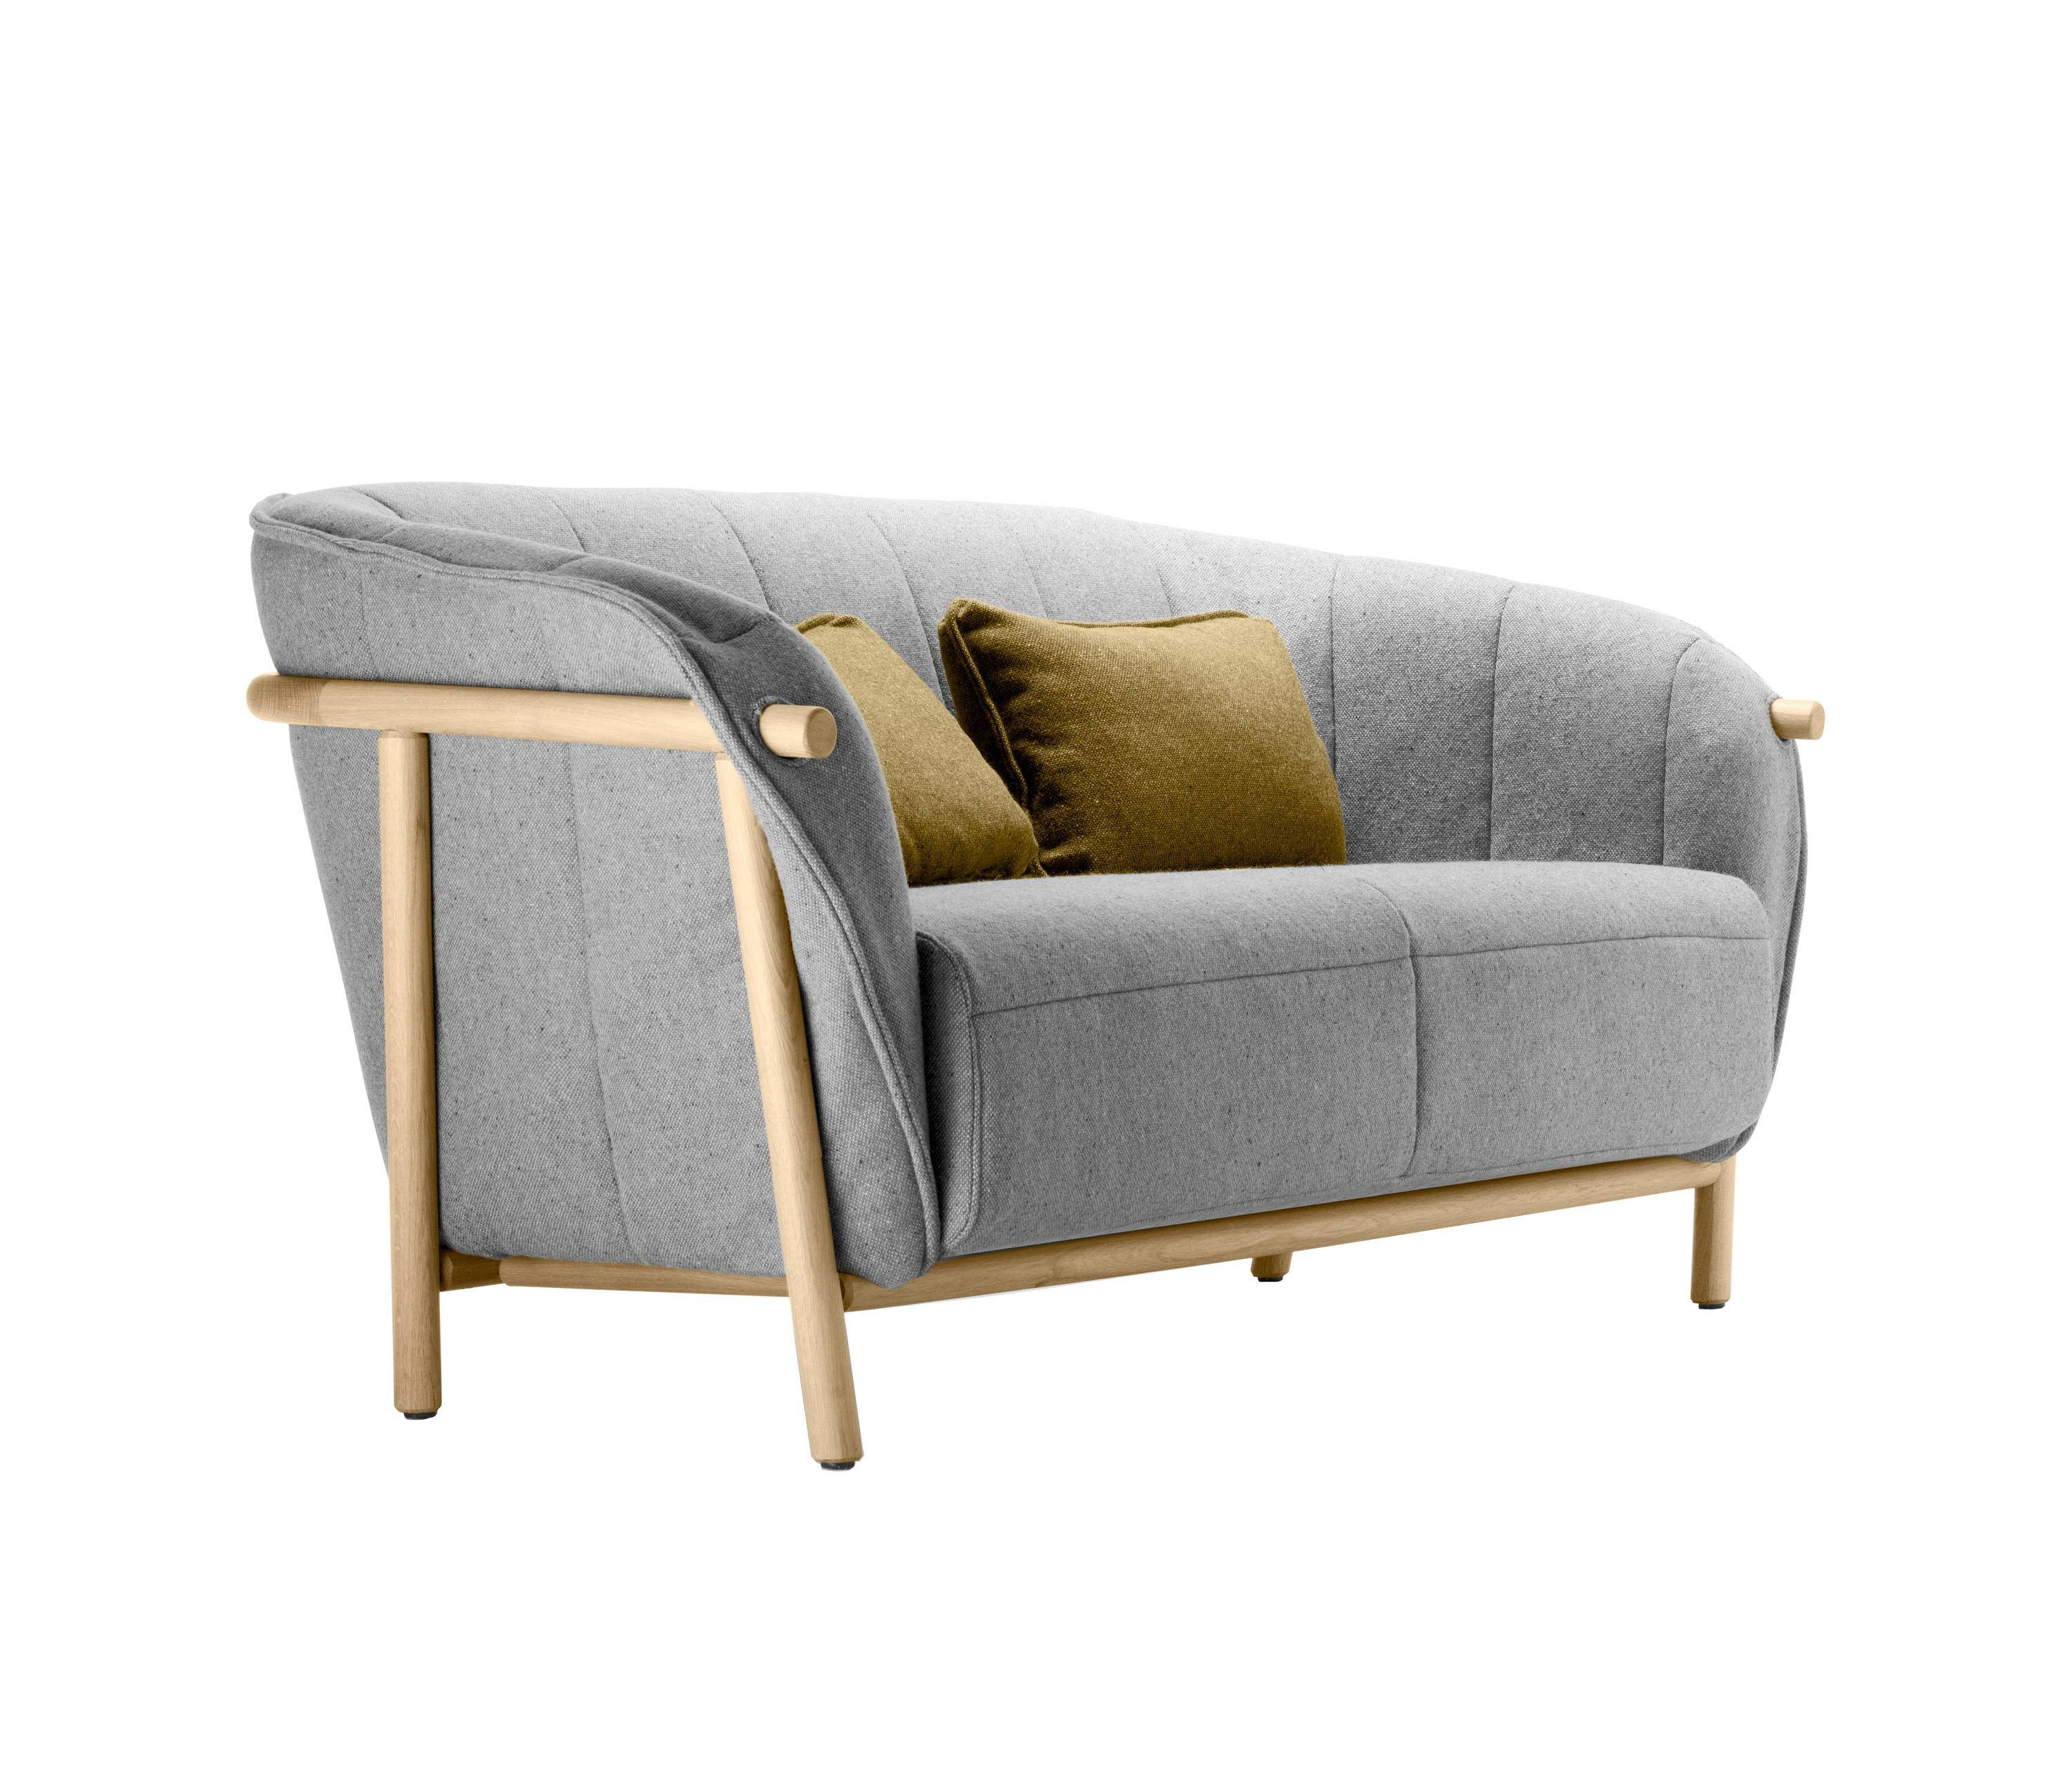 Yas   Lounge Sofas From Bosc | Architonic With Regard To Coffin Sofas (Photo 12 of 15)